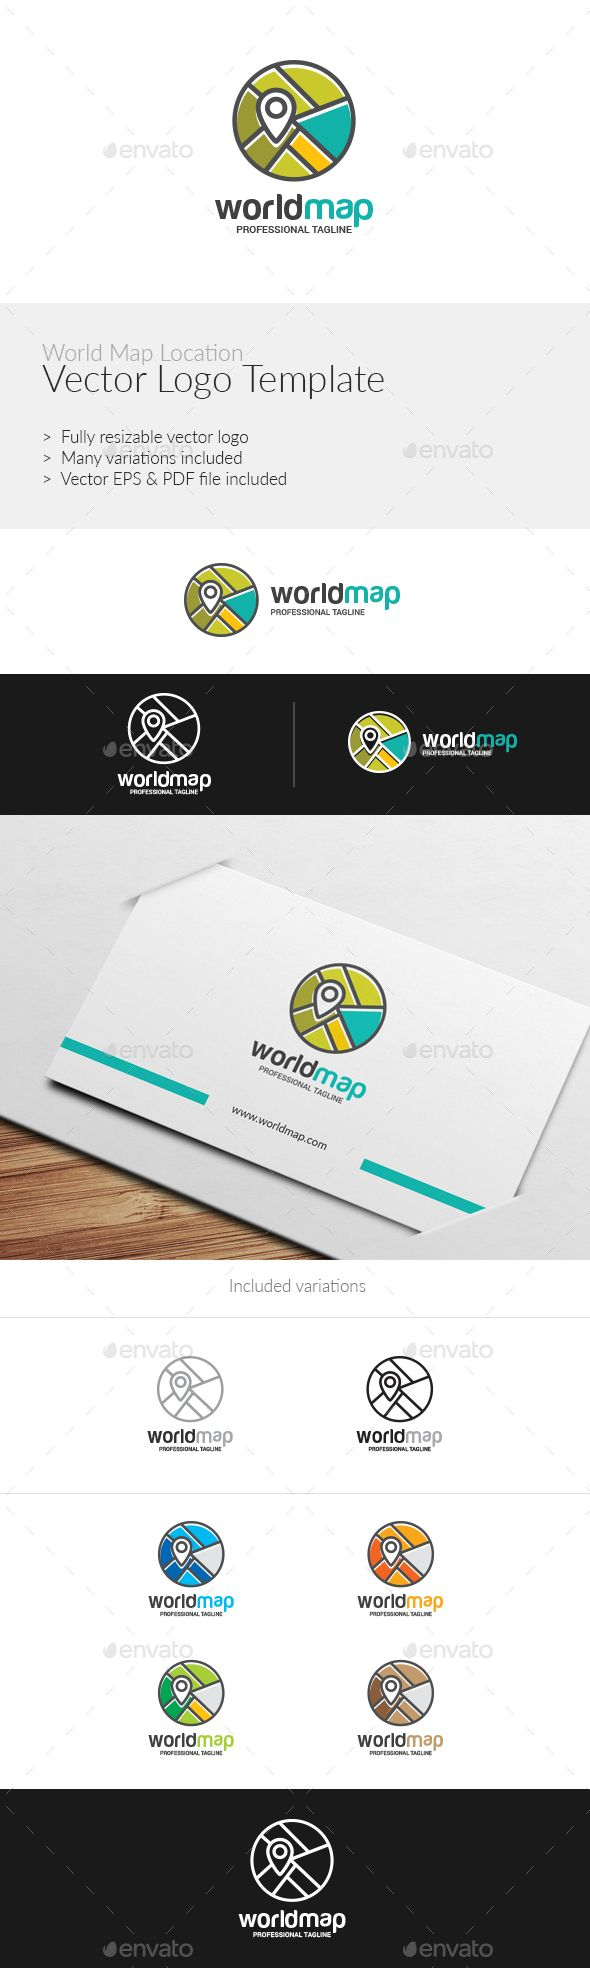 World Map Location Logo Template - Abstract #Logo Templates Download here:  https://graphicriver.net/item/world-map-location-logo-template/19343776?ref=alena994